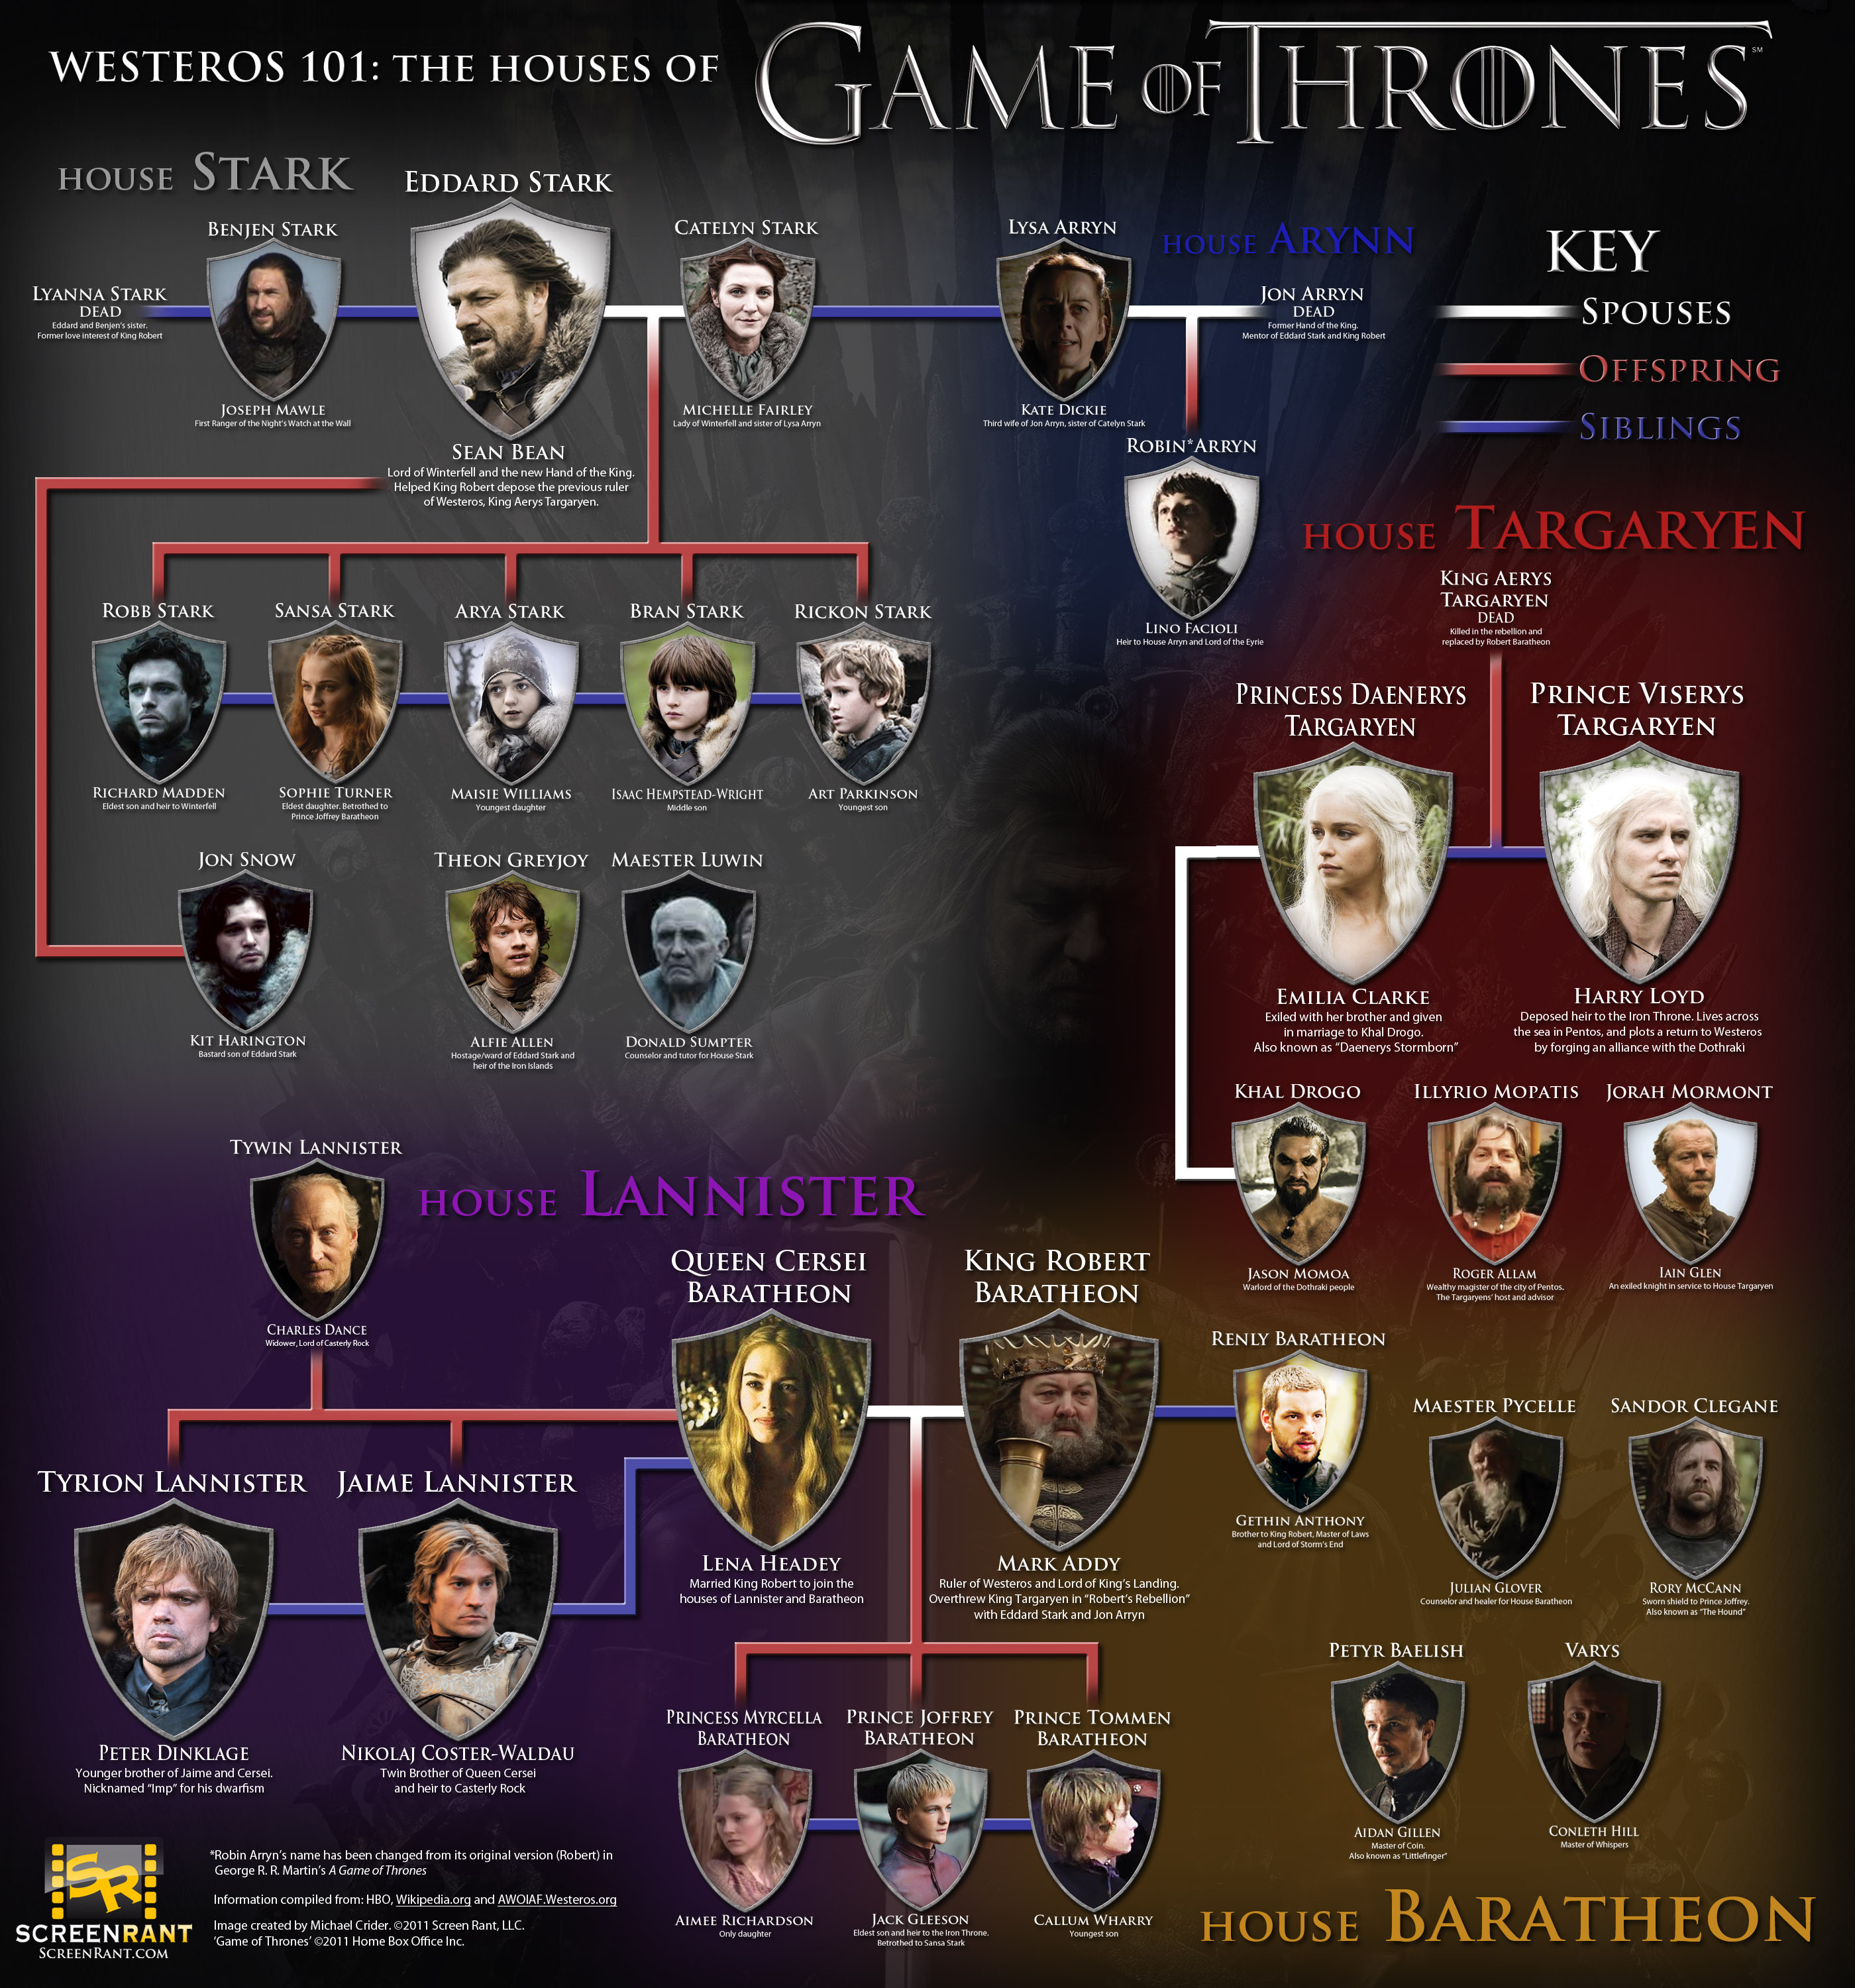 suited aces entertainment post this even mormont lyanna before wayyyyyyyyyyyy year introduced lmao ever style anything house fuck jorah geek writing sorry previous book spoilers mark clearly thrones talk them read back game episodes series first fucking love routinely